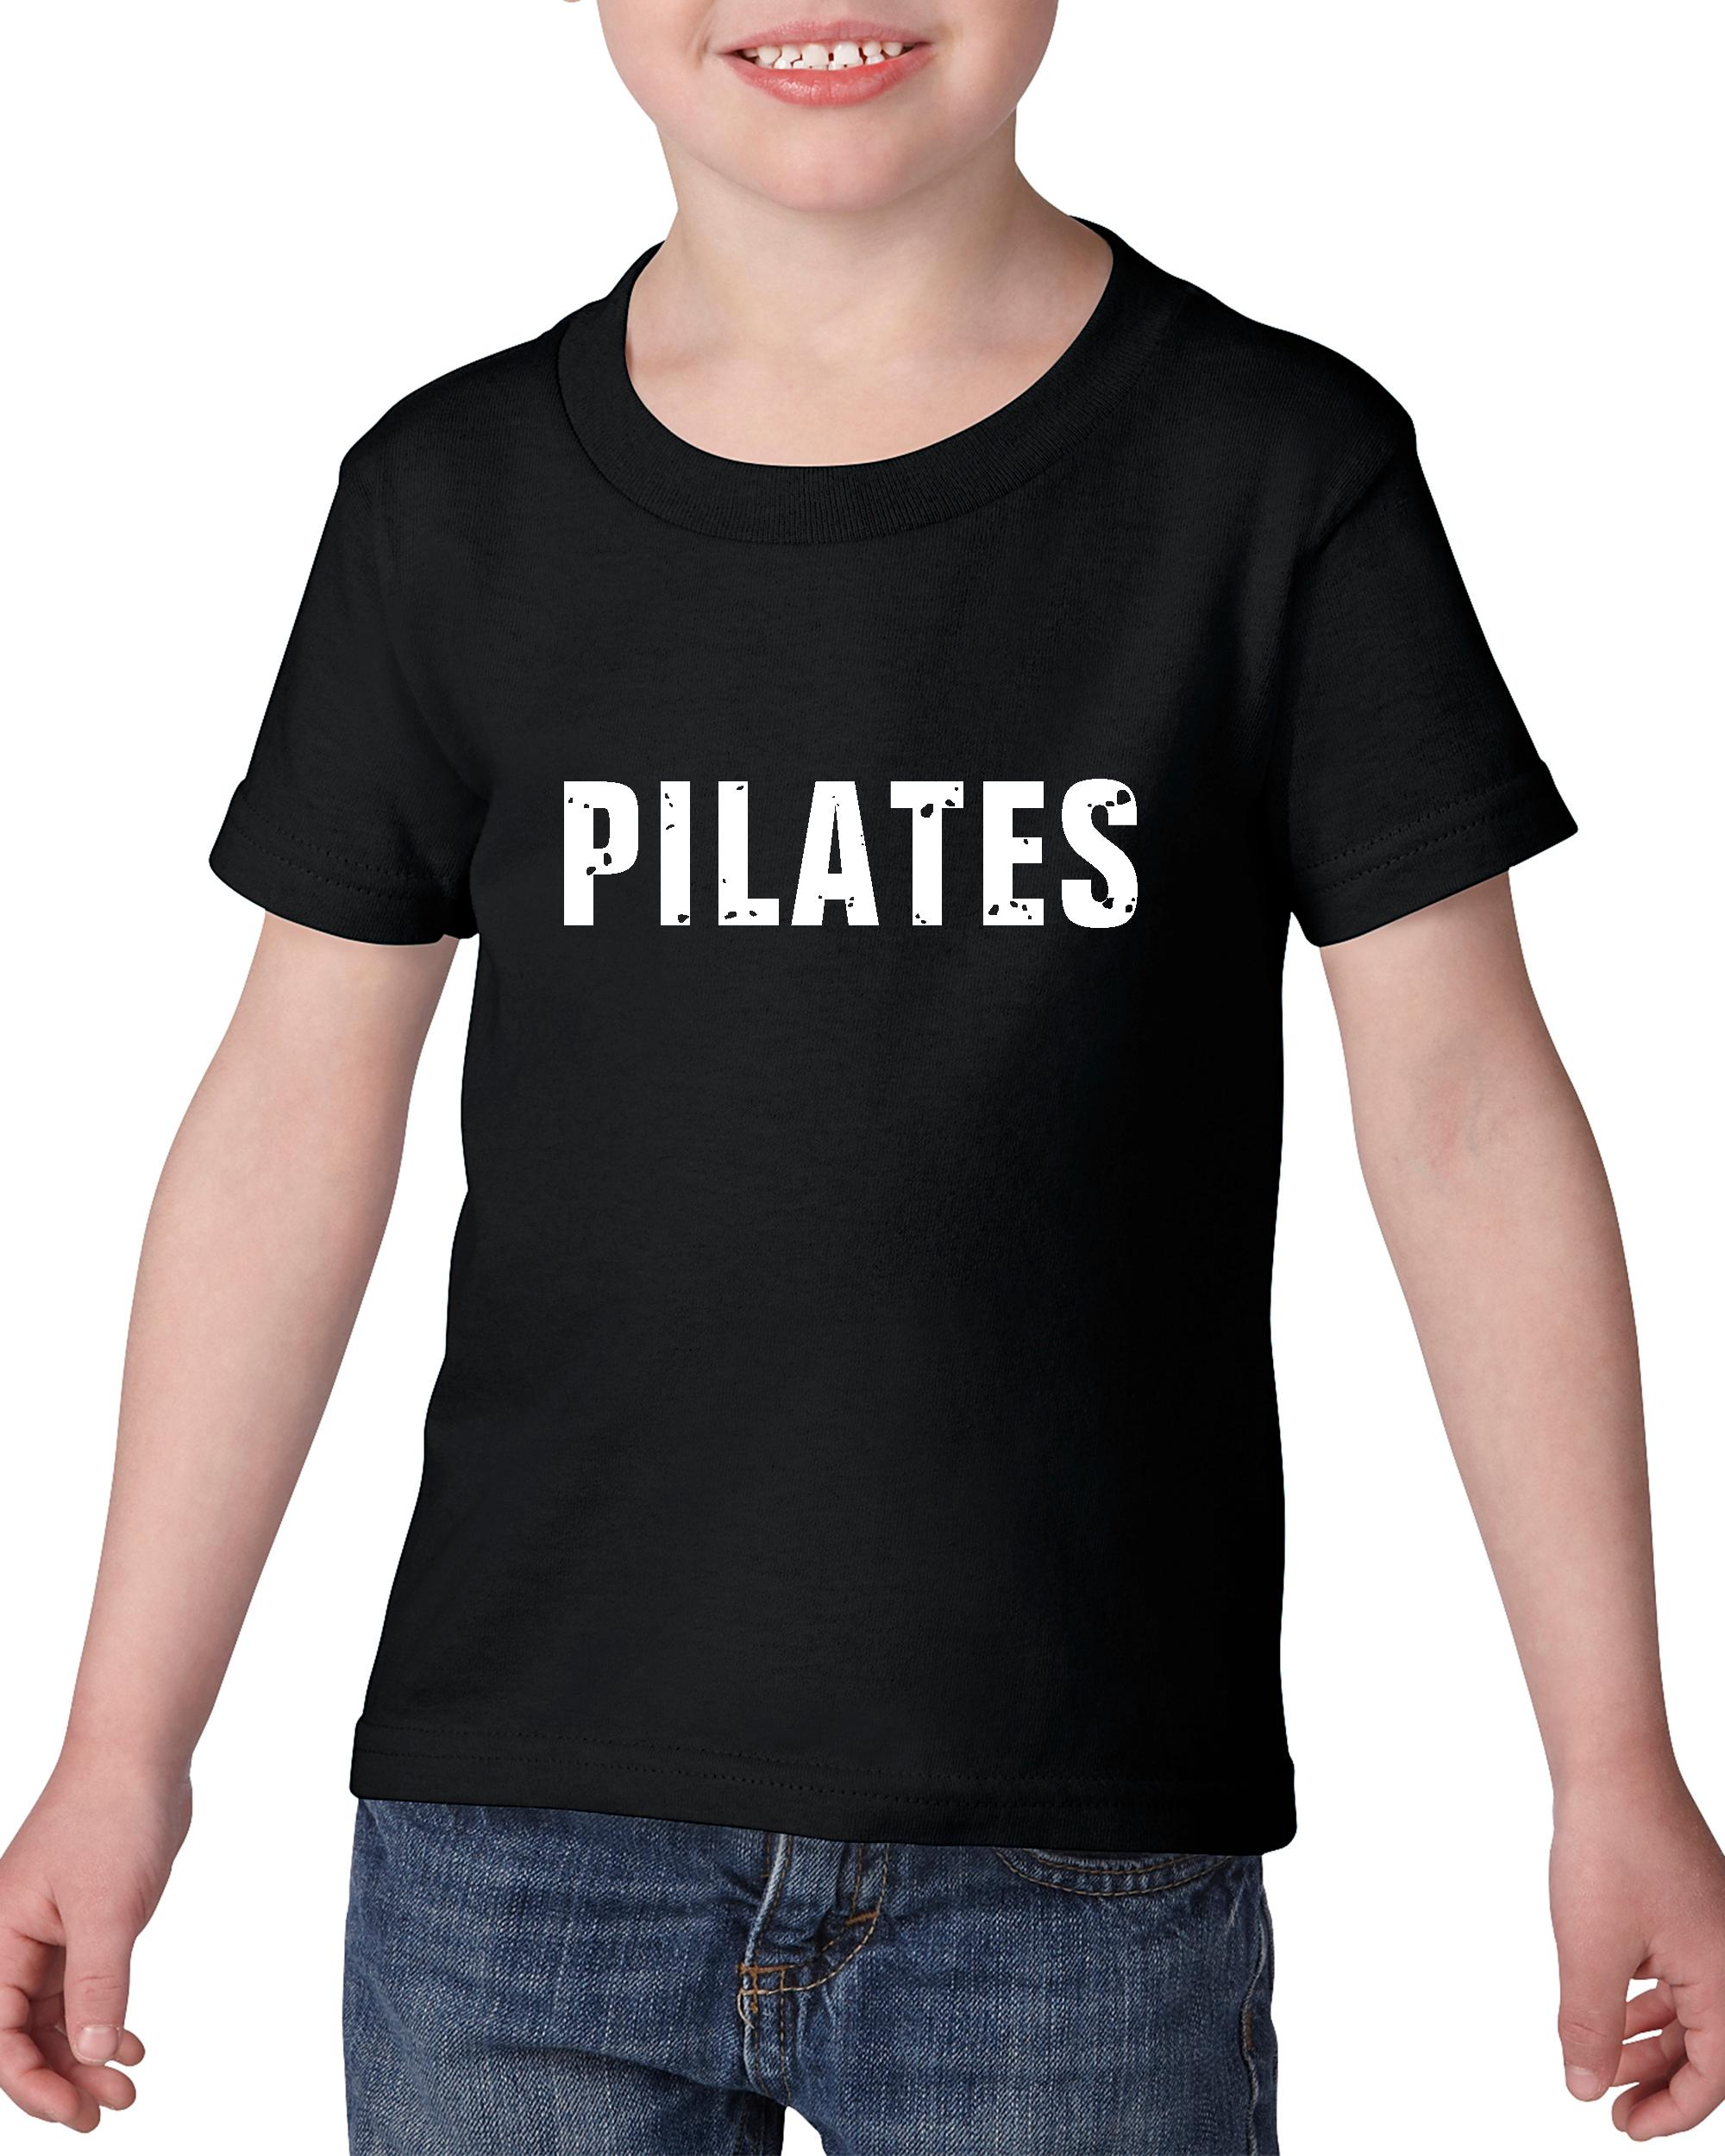 Artix Pilates Exercise Sport Fitness Workout Apparel Birthday Christmas Gift Heavy Cotton Toddler Kids T-Shirt Tee Clothing